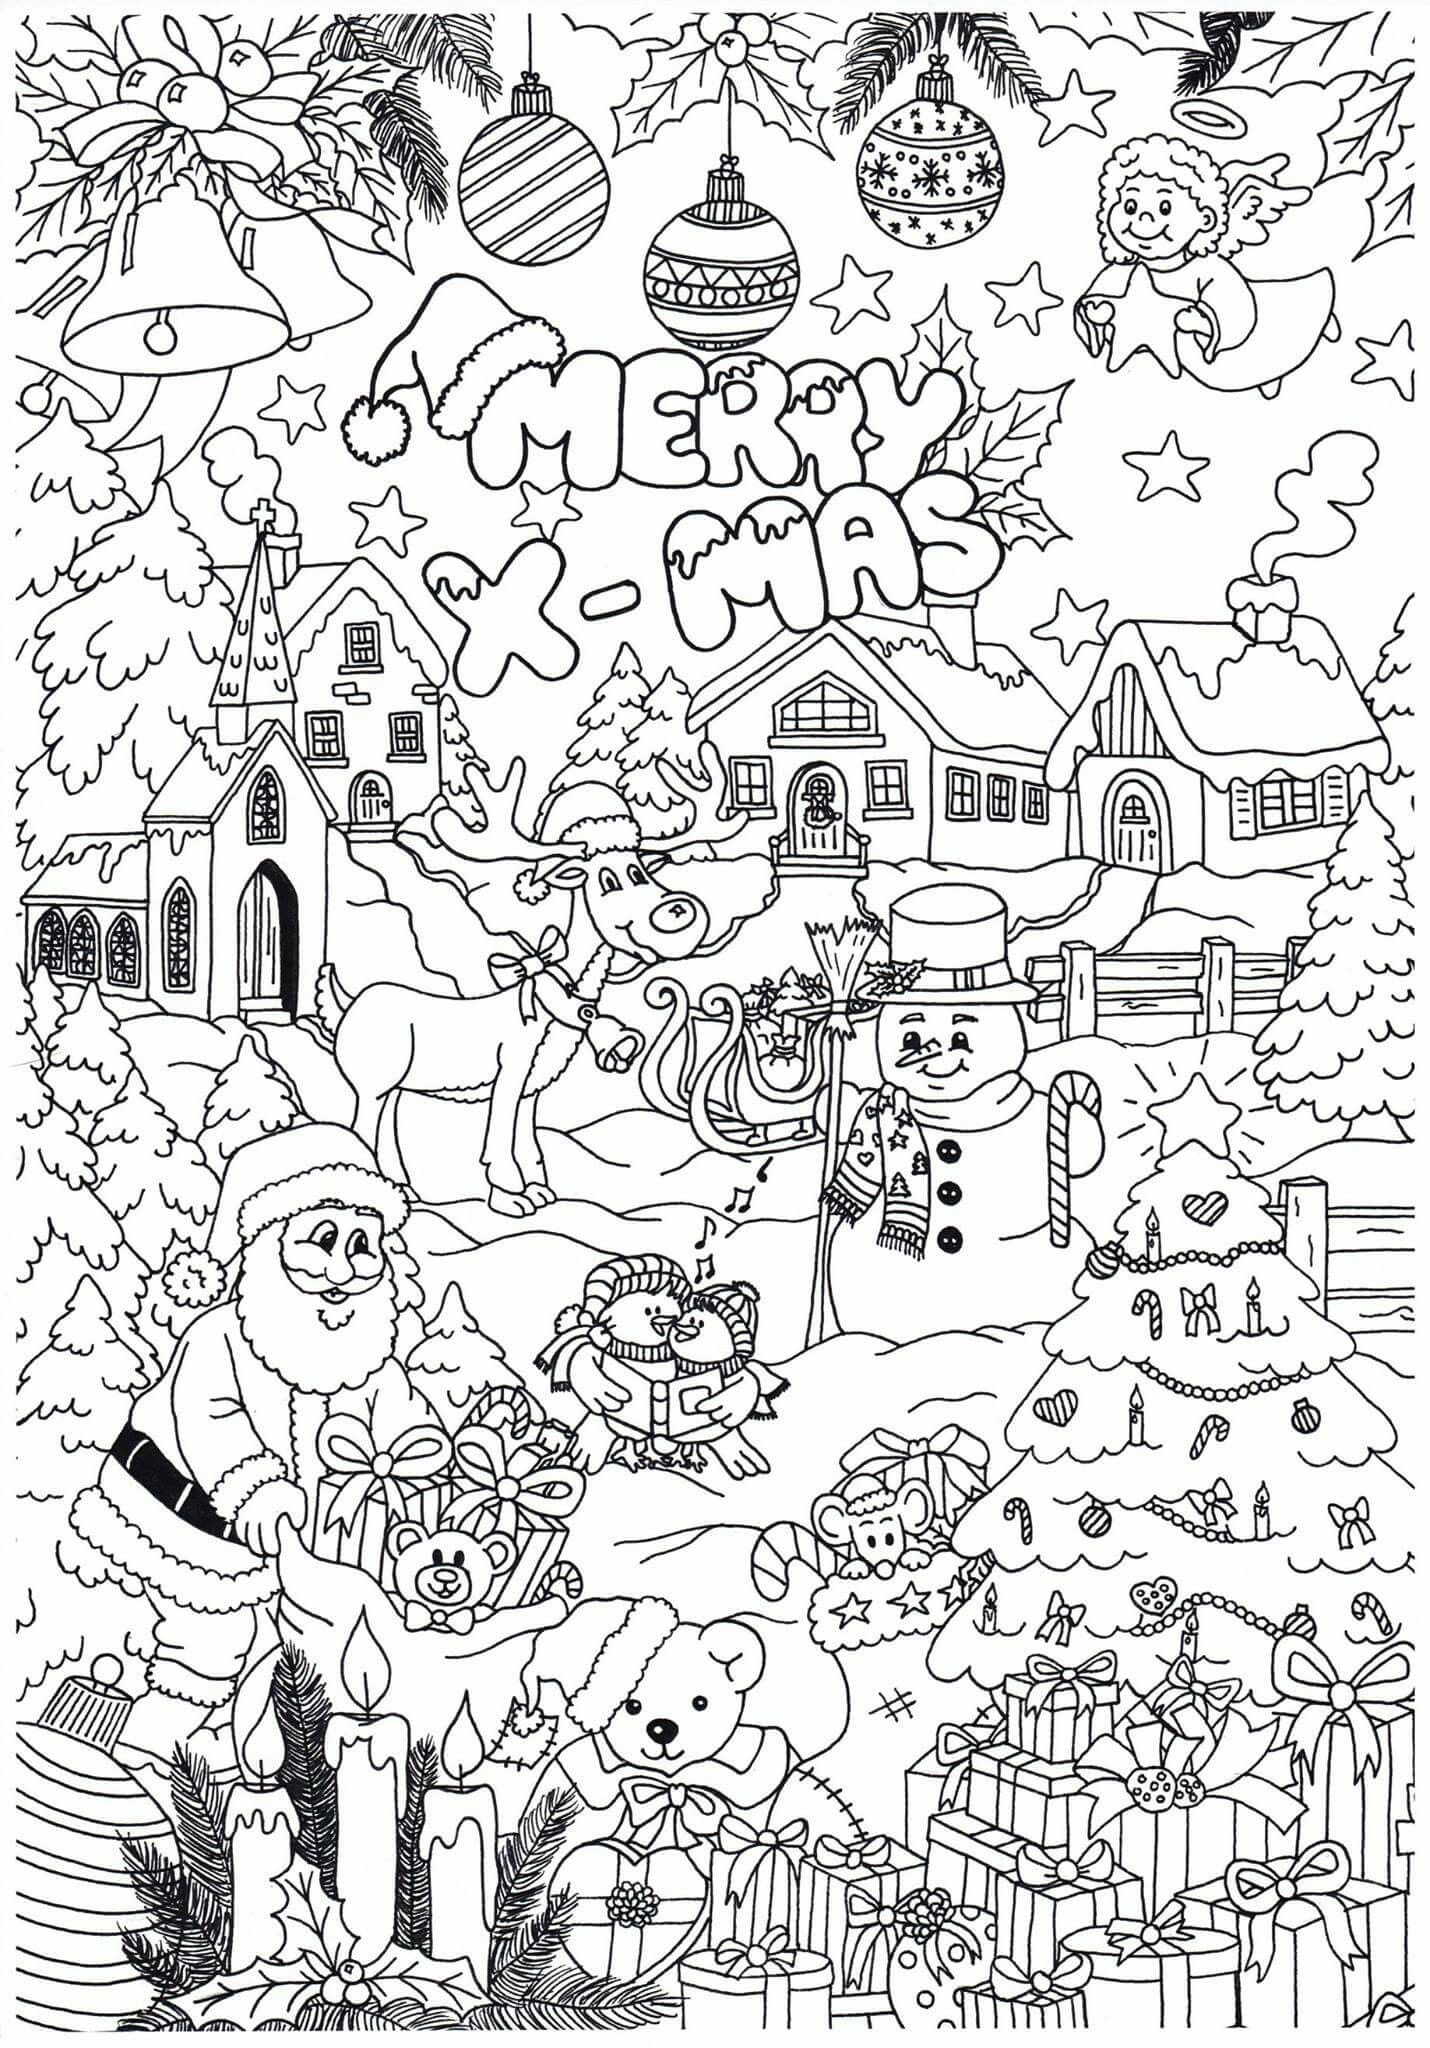 Pin By Annemieke Reniers On Kleurplaten Christmas Pictures To Color Angel Coloring Pages Christmas Colors